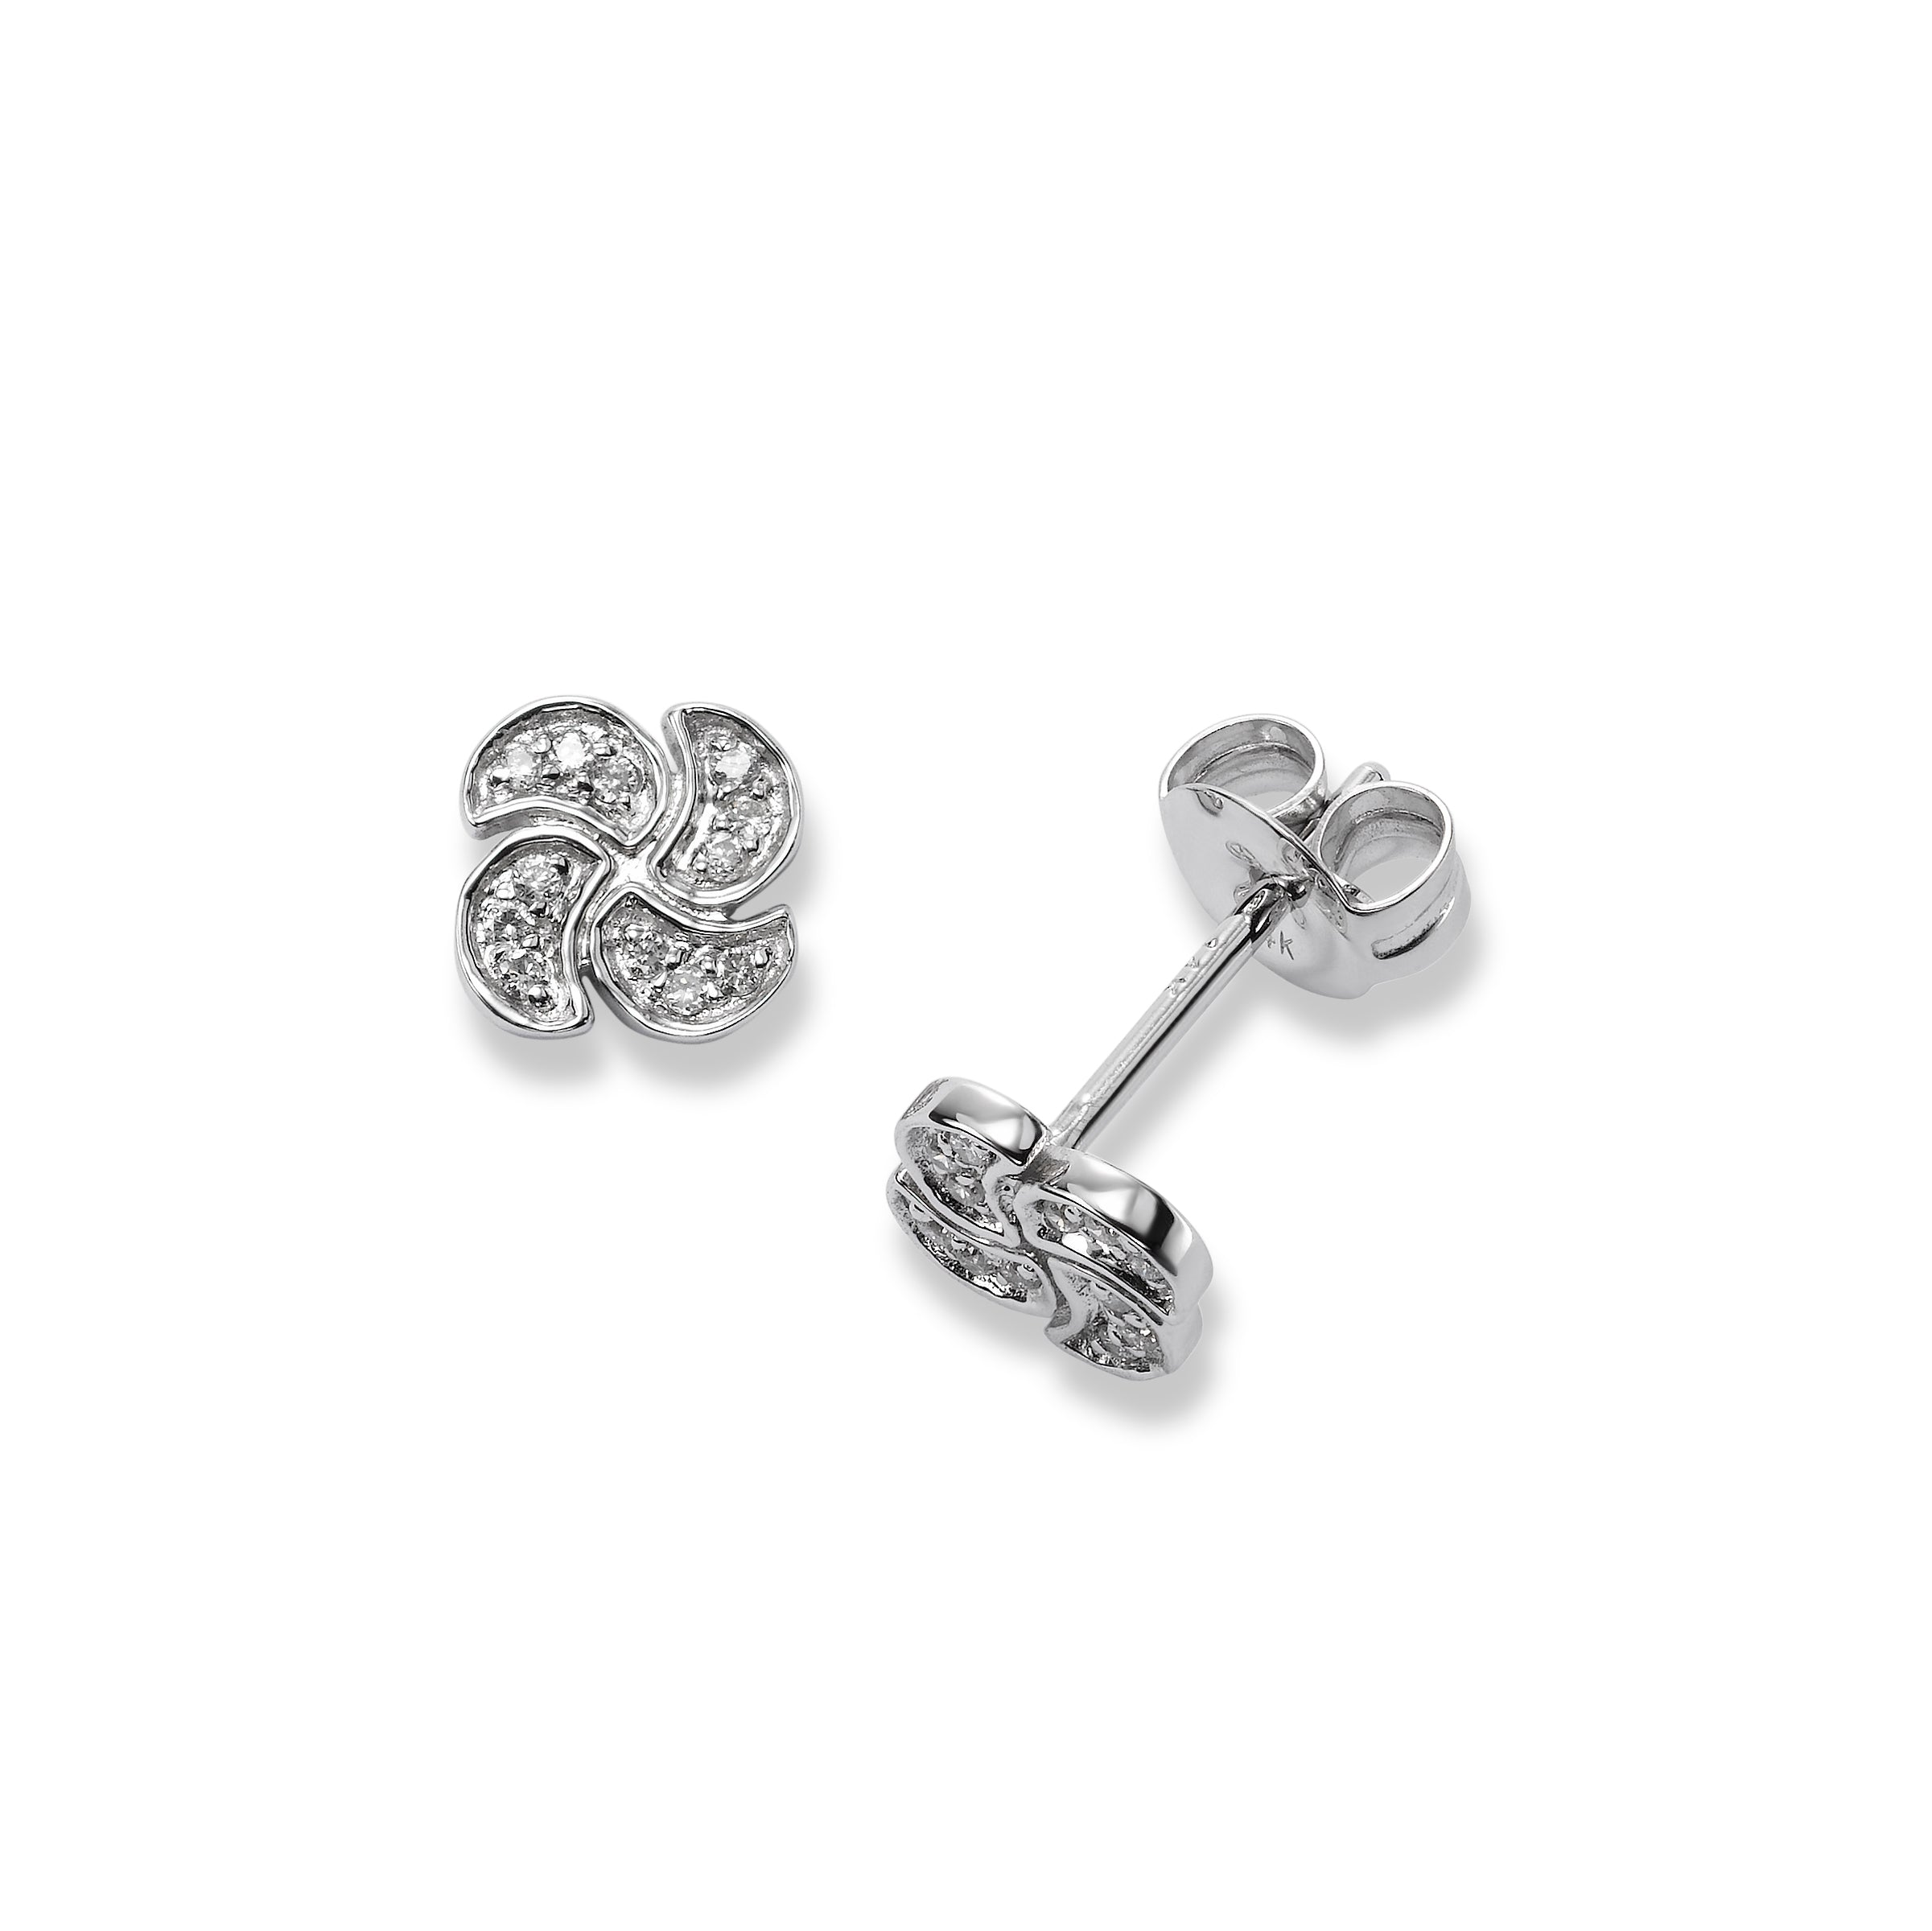 Small Pavé Diamond Swirl Earrings, 14K White Gold